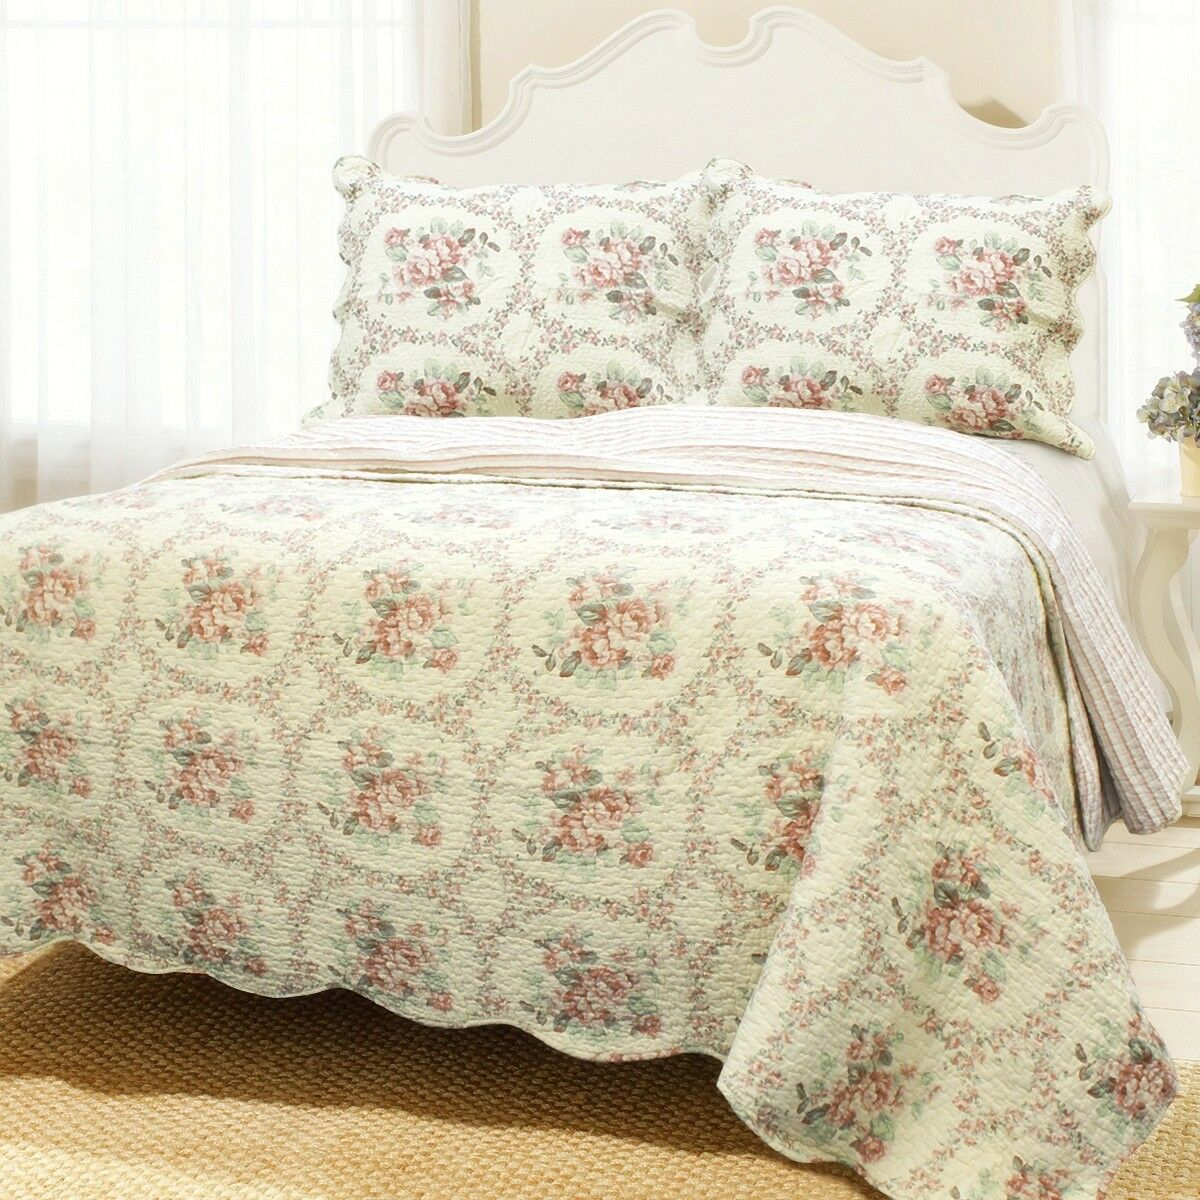 Reminiscent Mood rot 100% Cotton Quilt Set, Bedspread, Coverlet